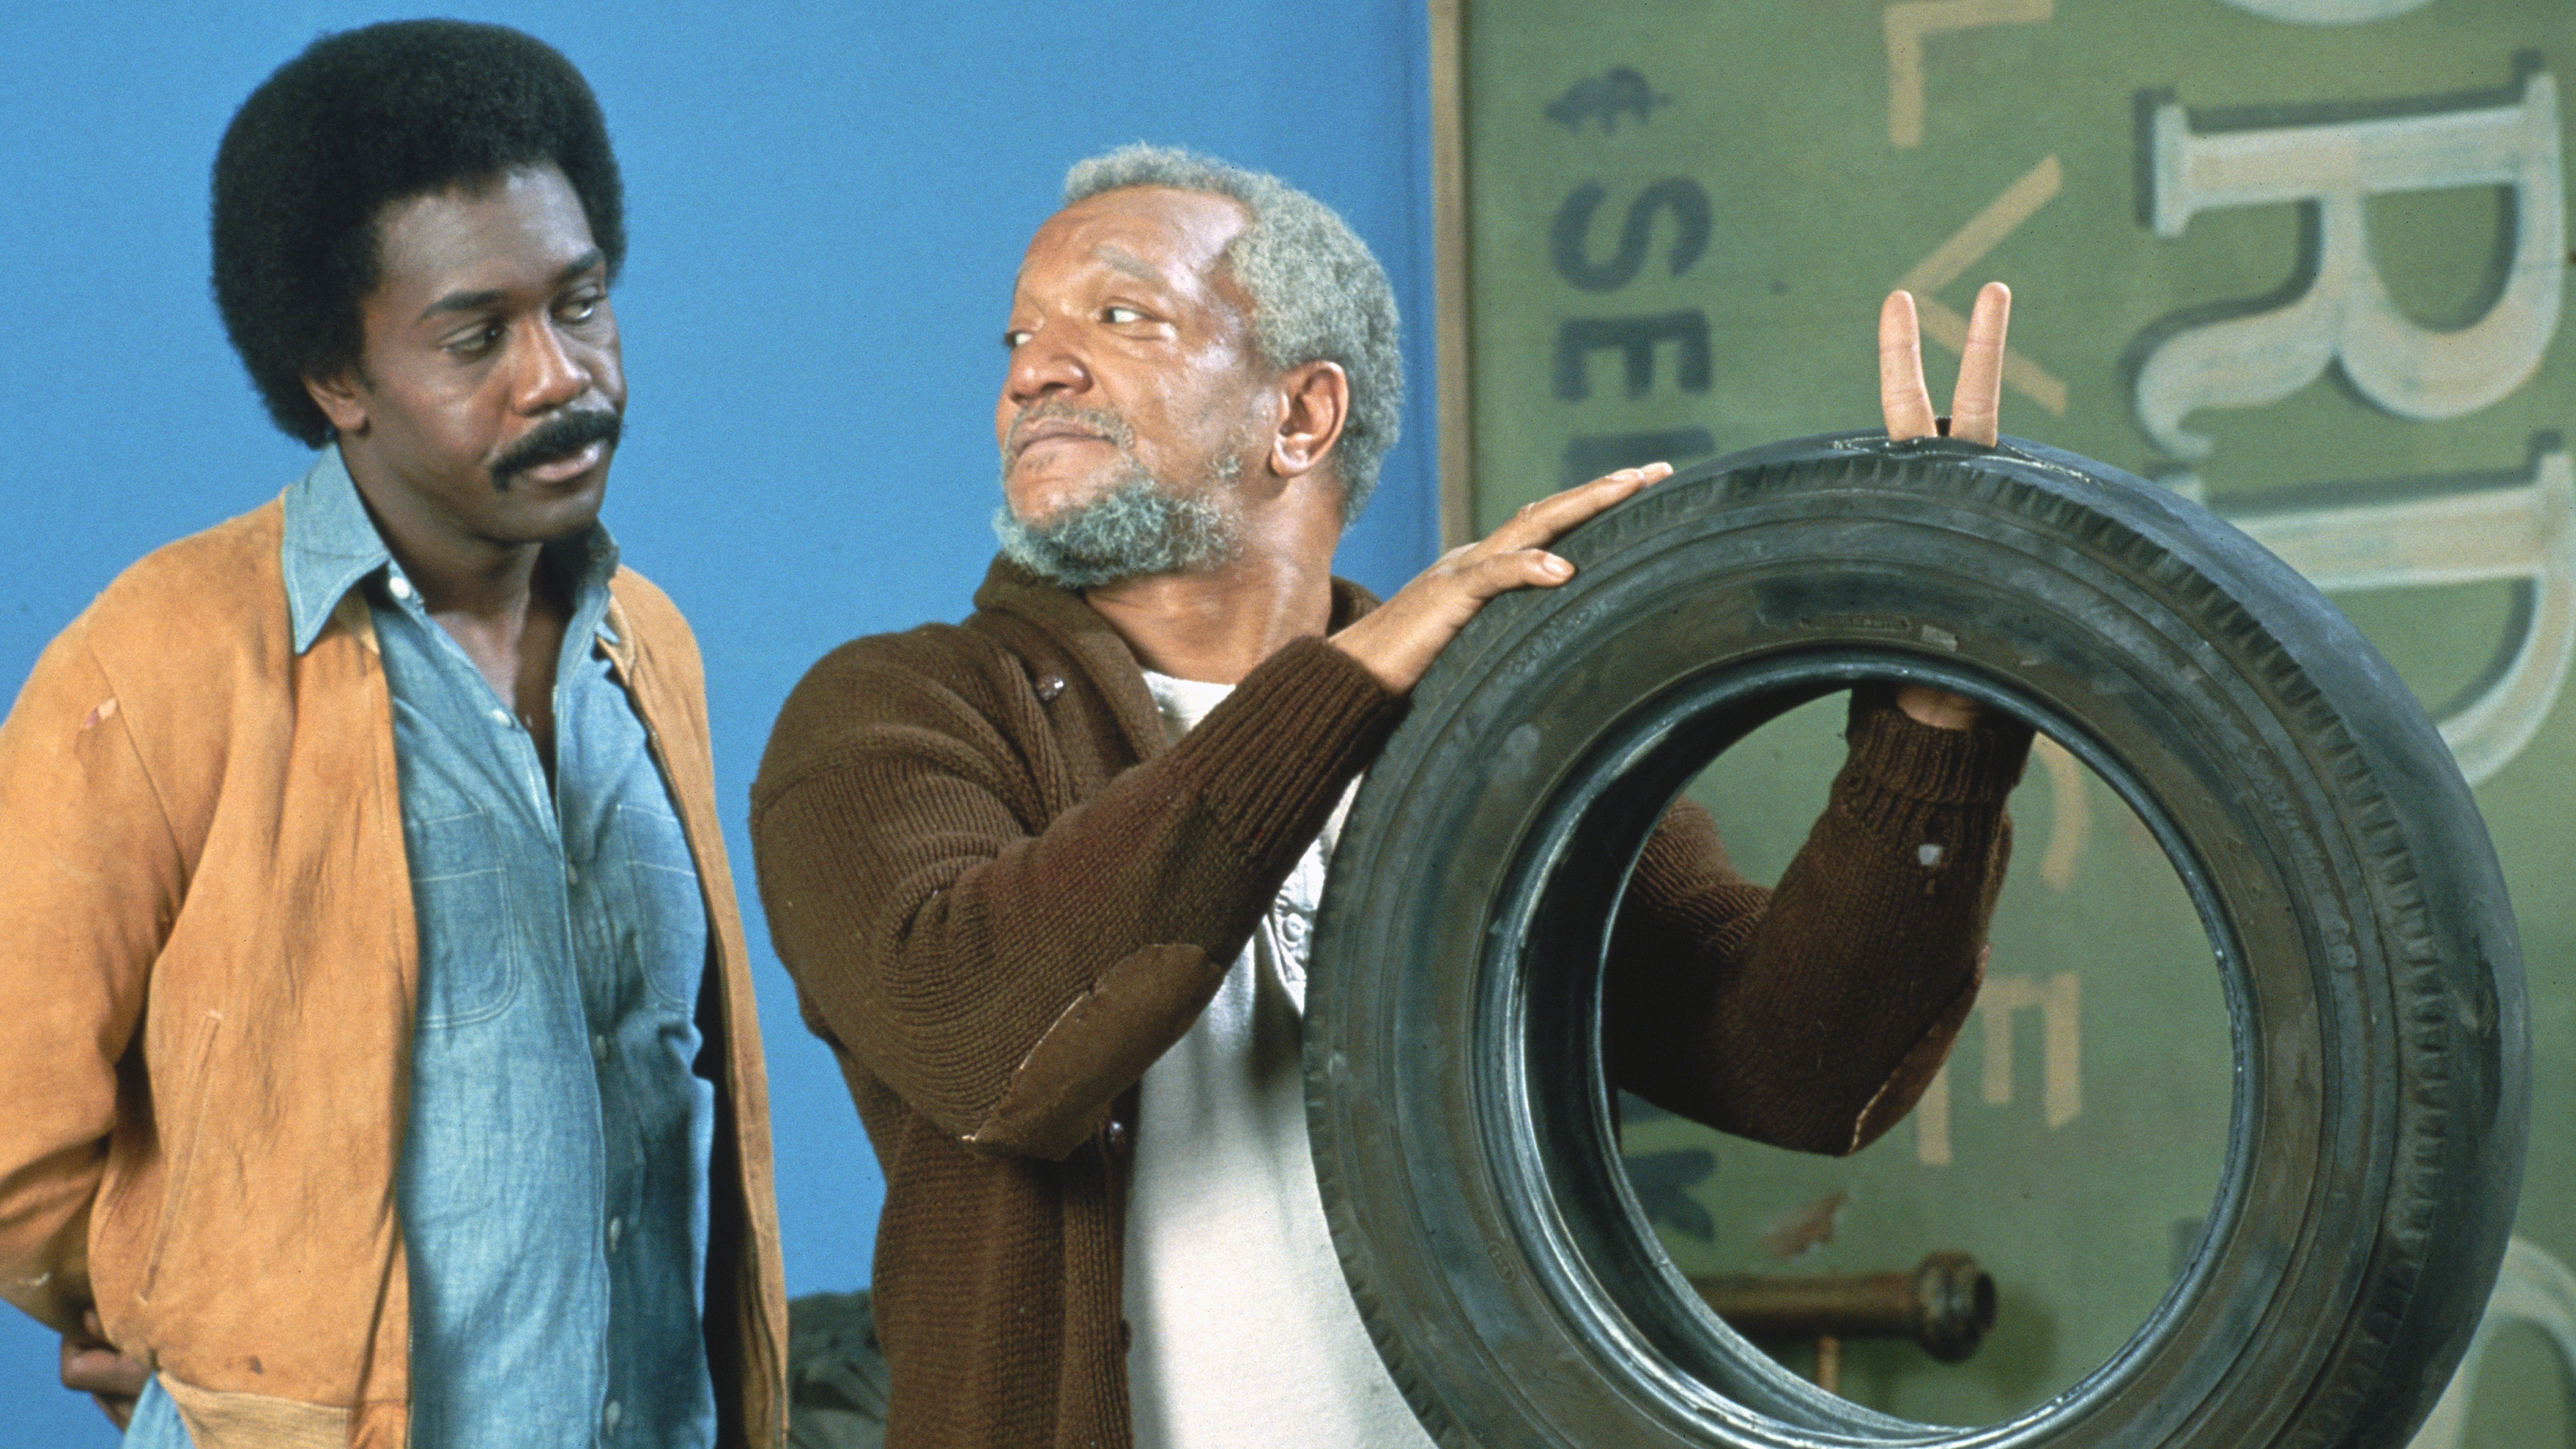 Sanford-and-Son-Trivia-question9-image